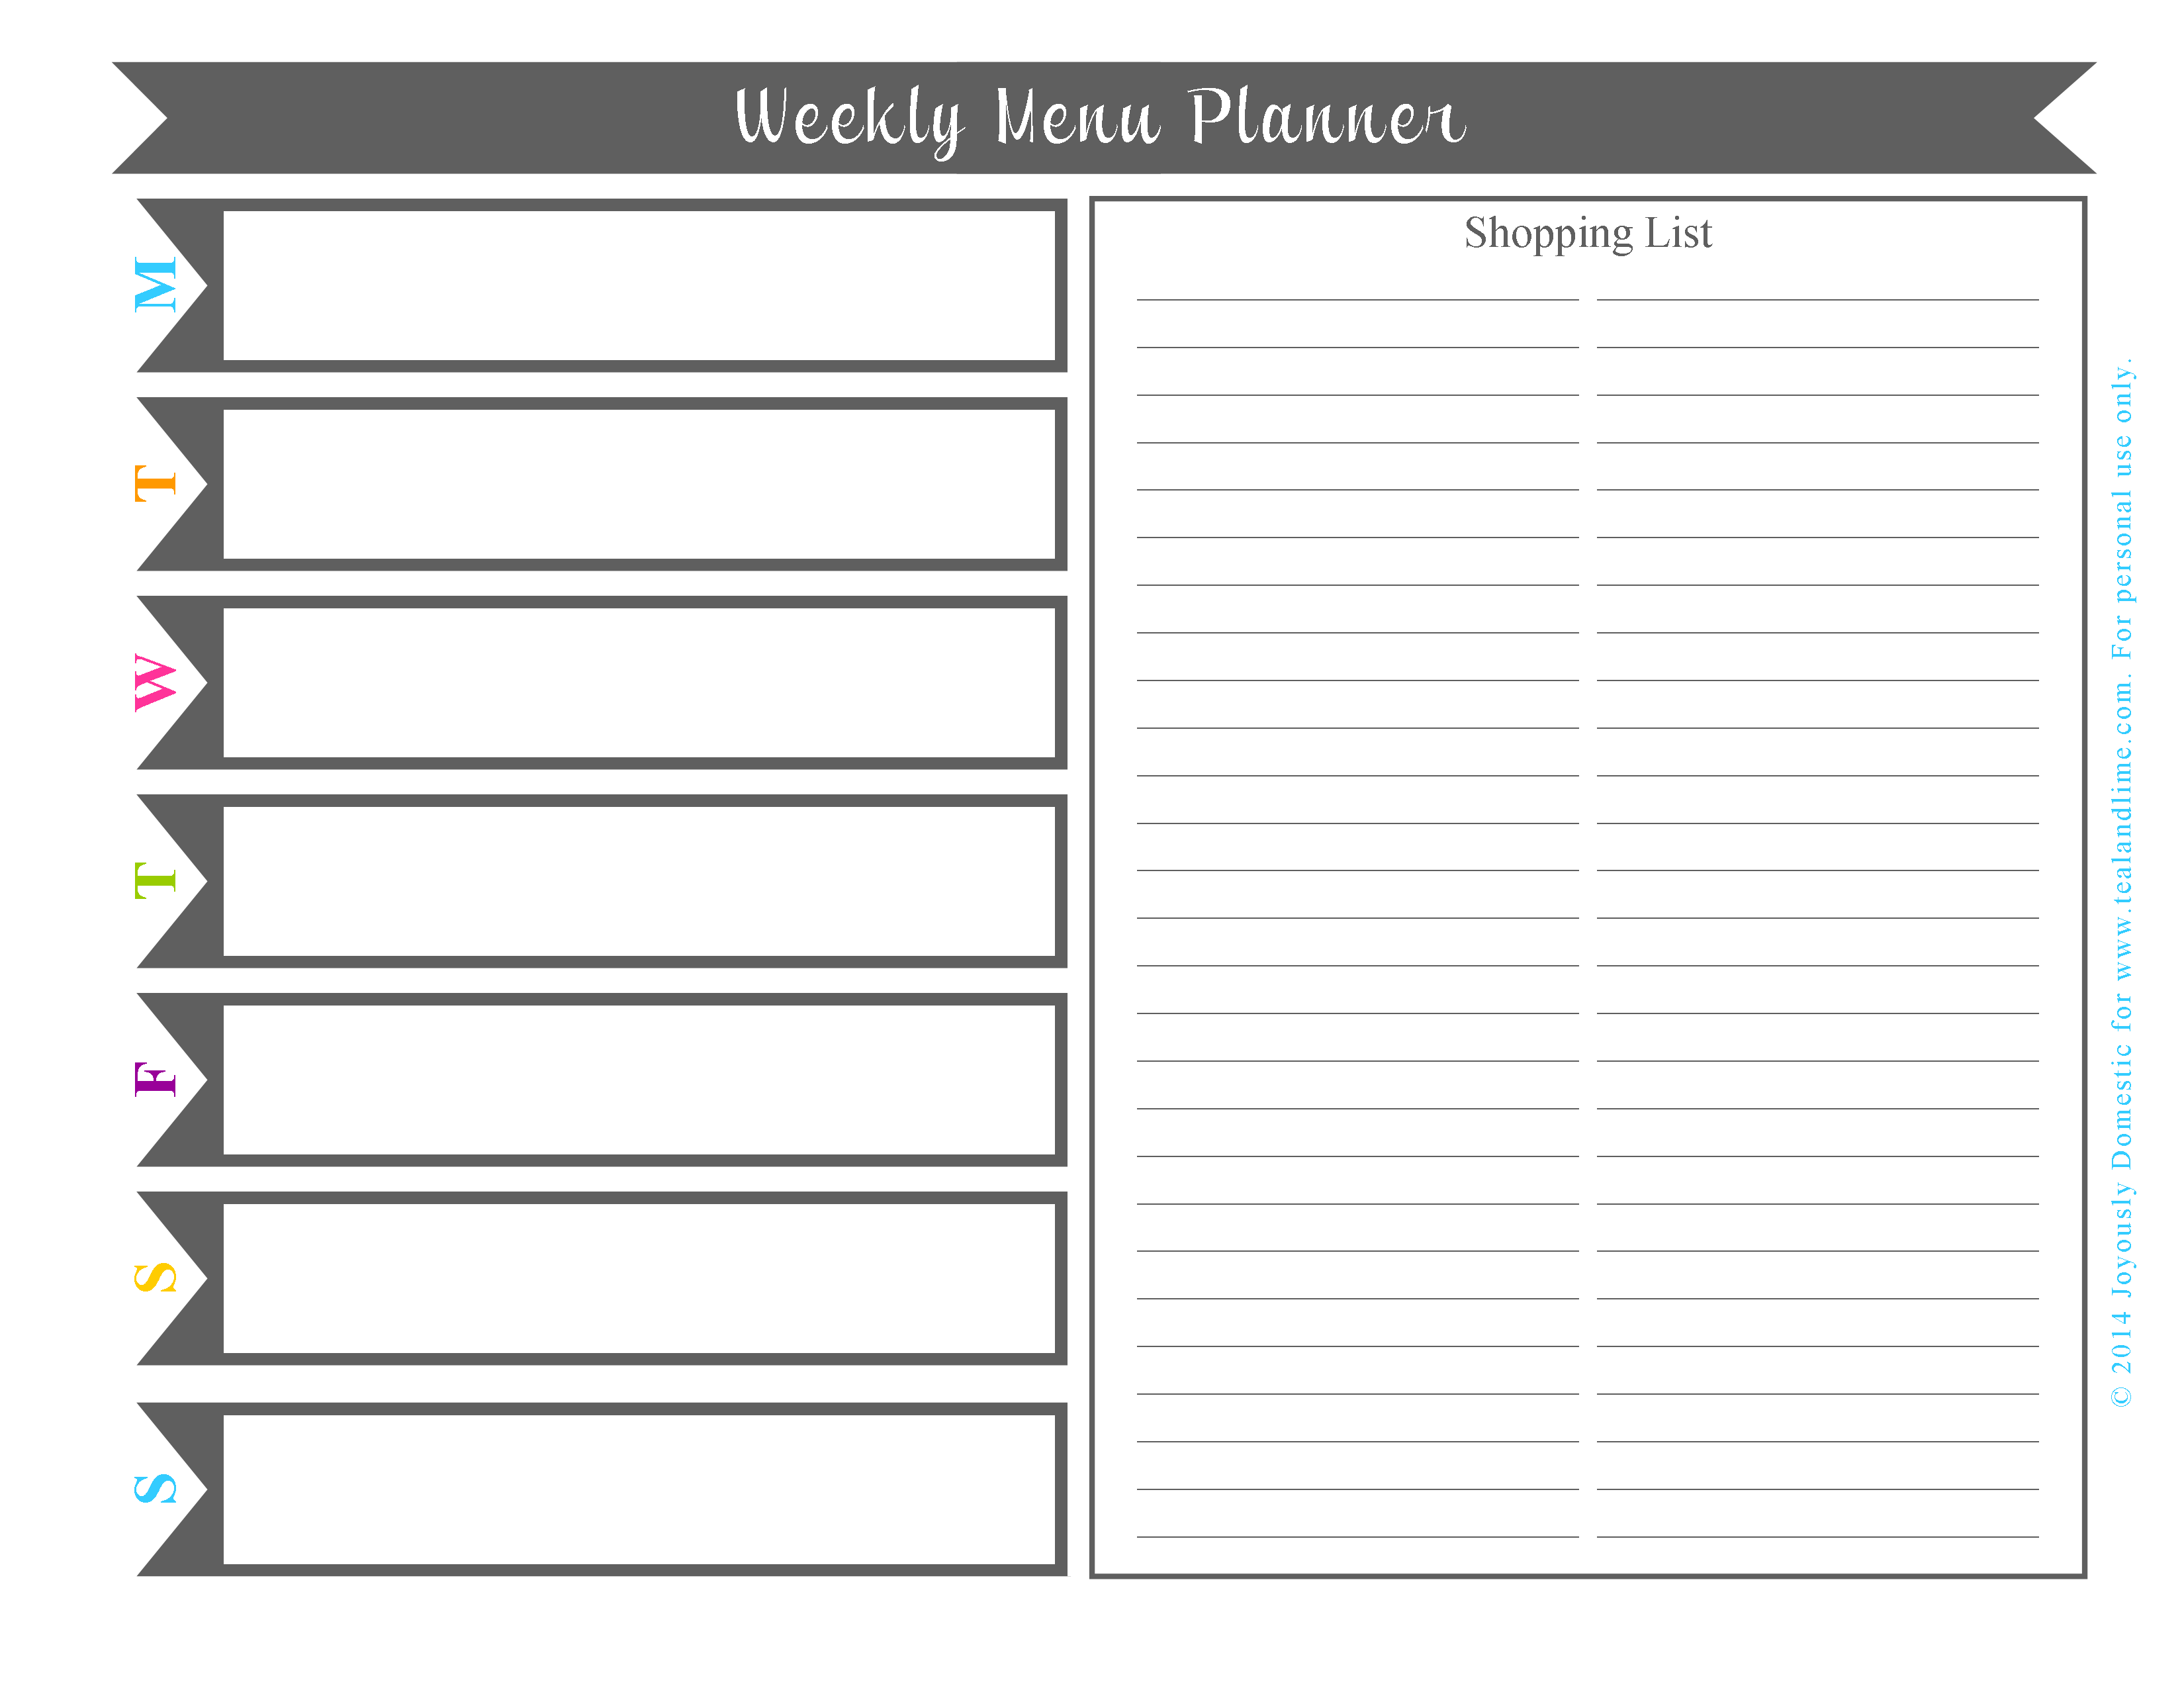 FREE Printable Weekly Menu Planner | Joyously Domestic for tealandlime.com